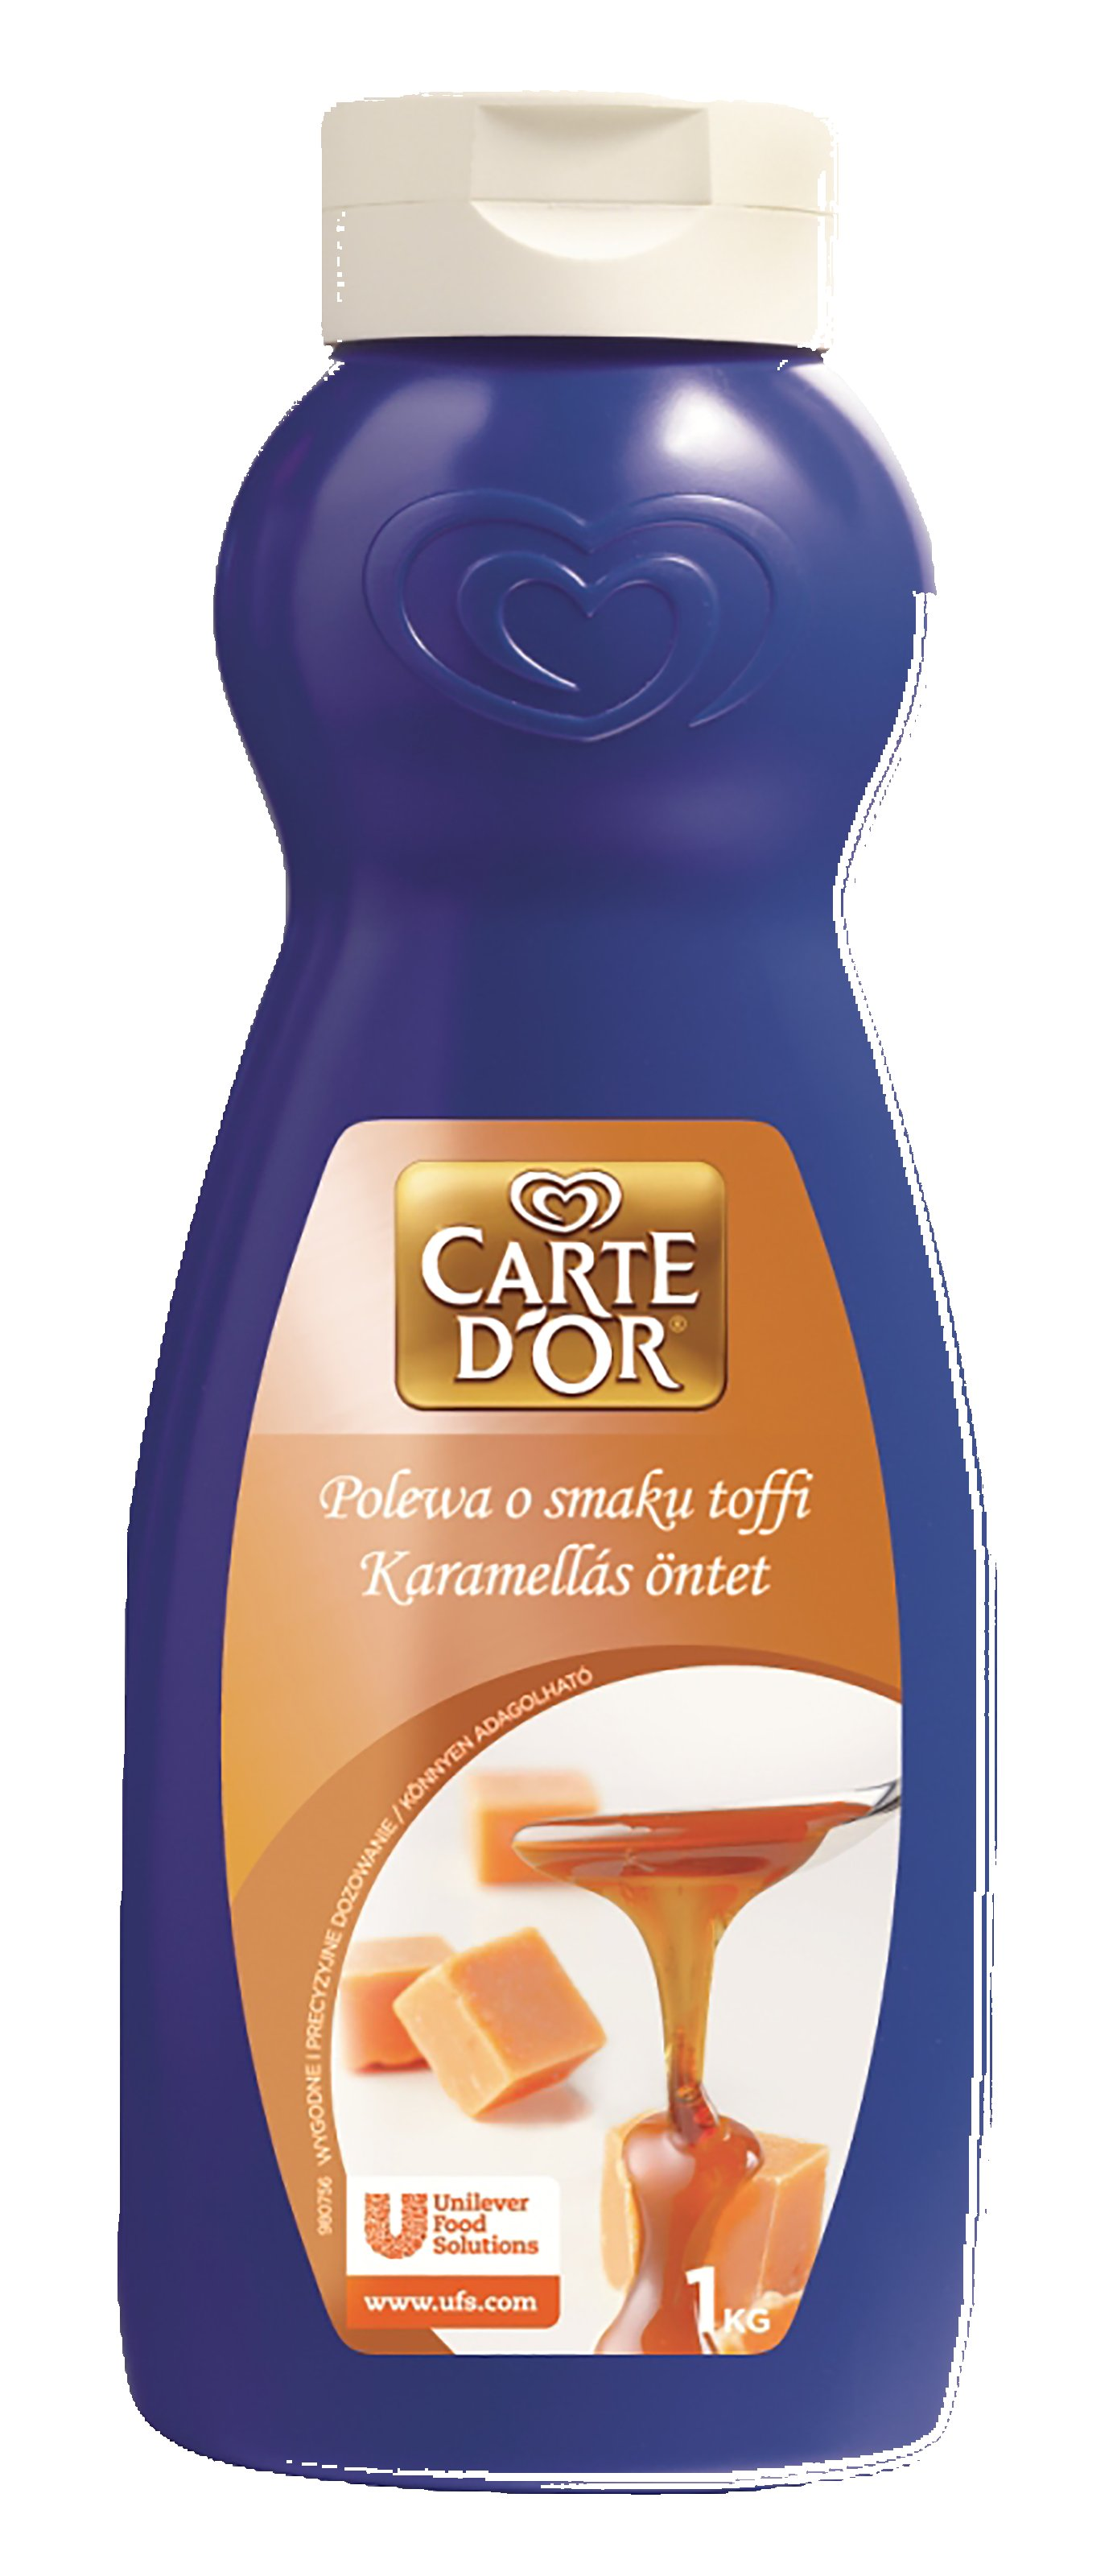 CARTE d'OR Karamellás öntet -